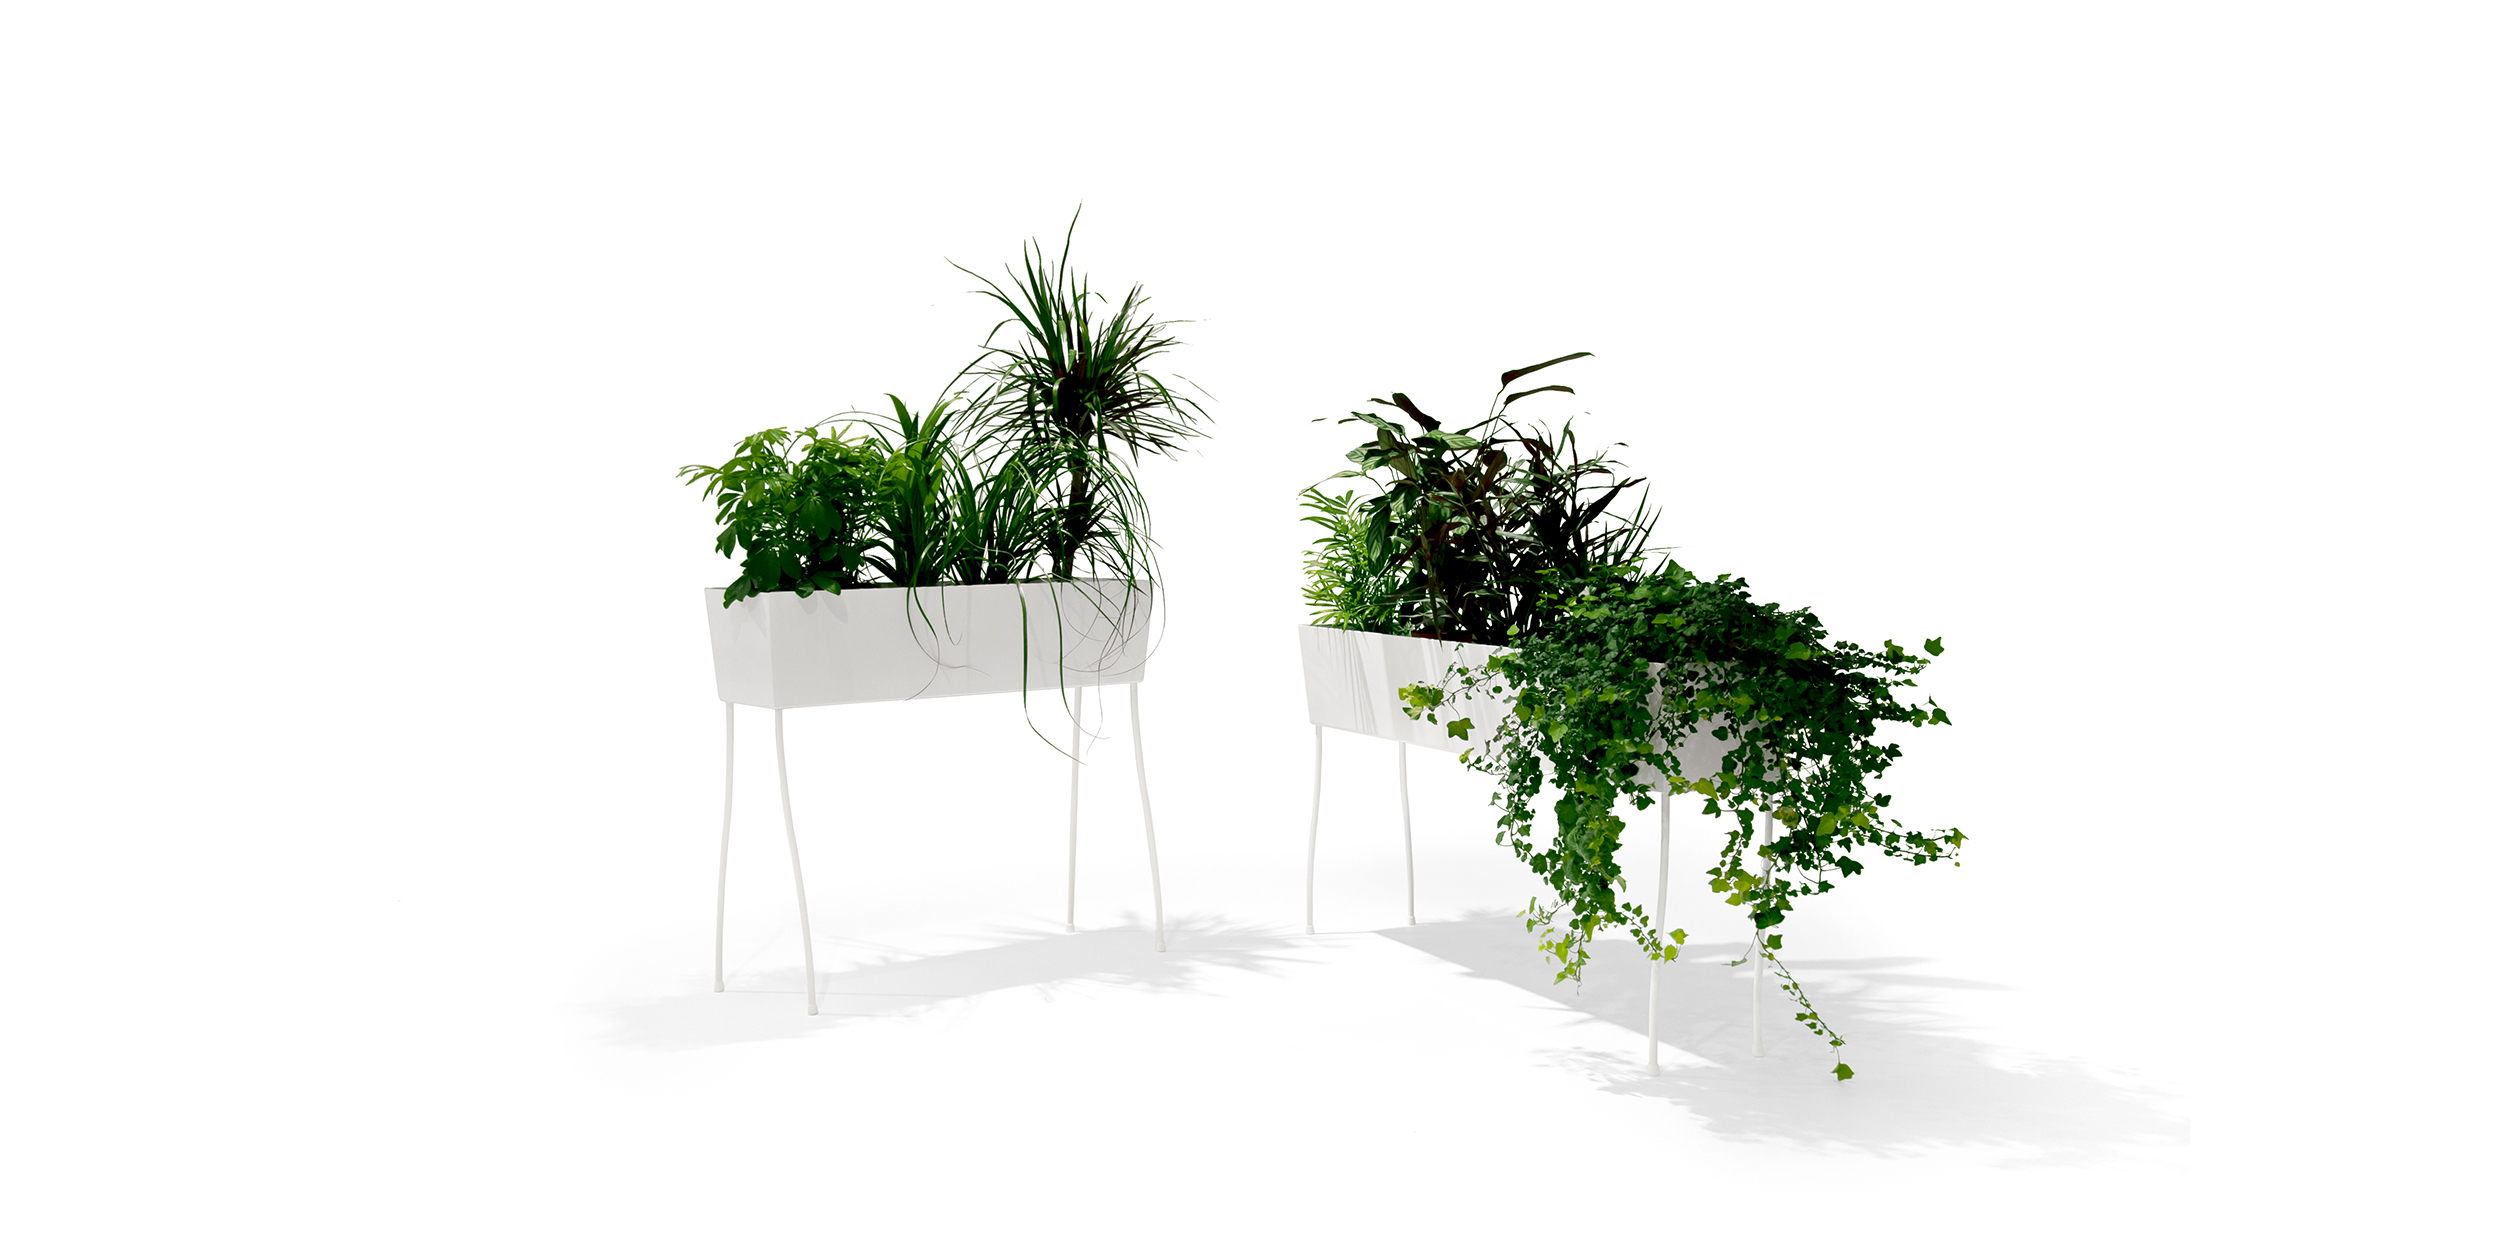 Green Pedestals, O2asis by Front